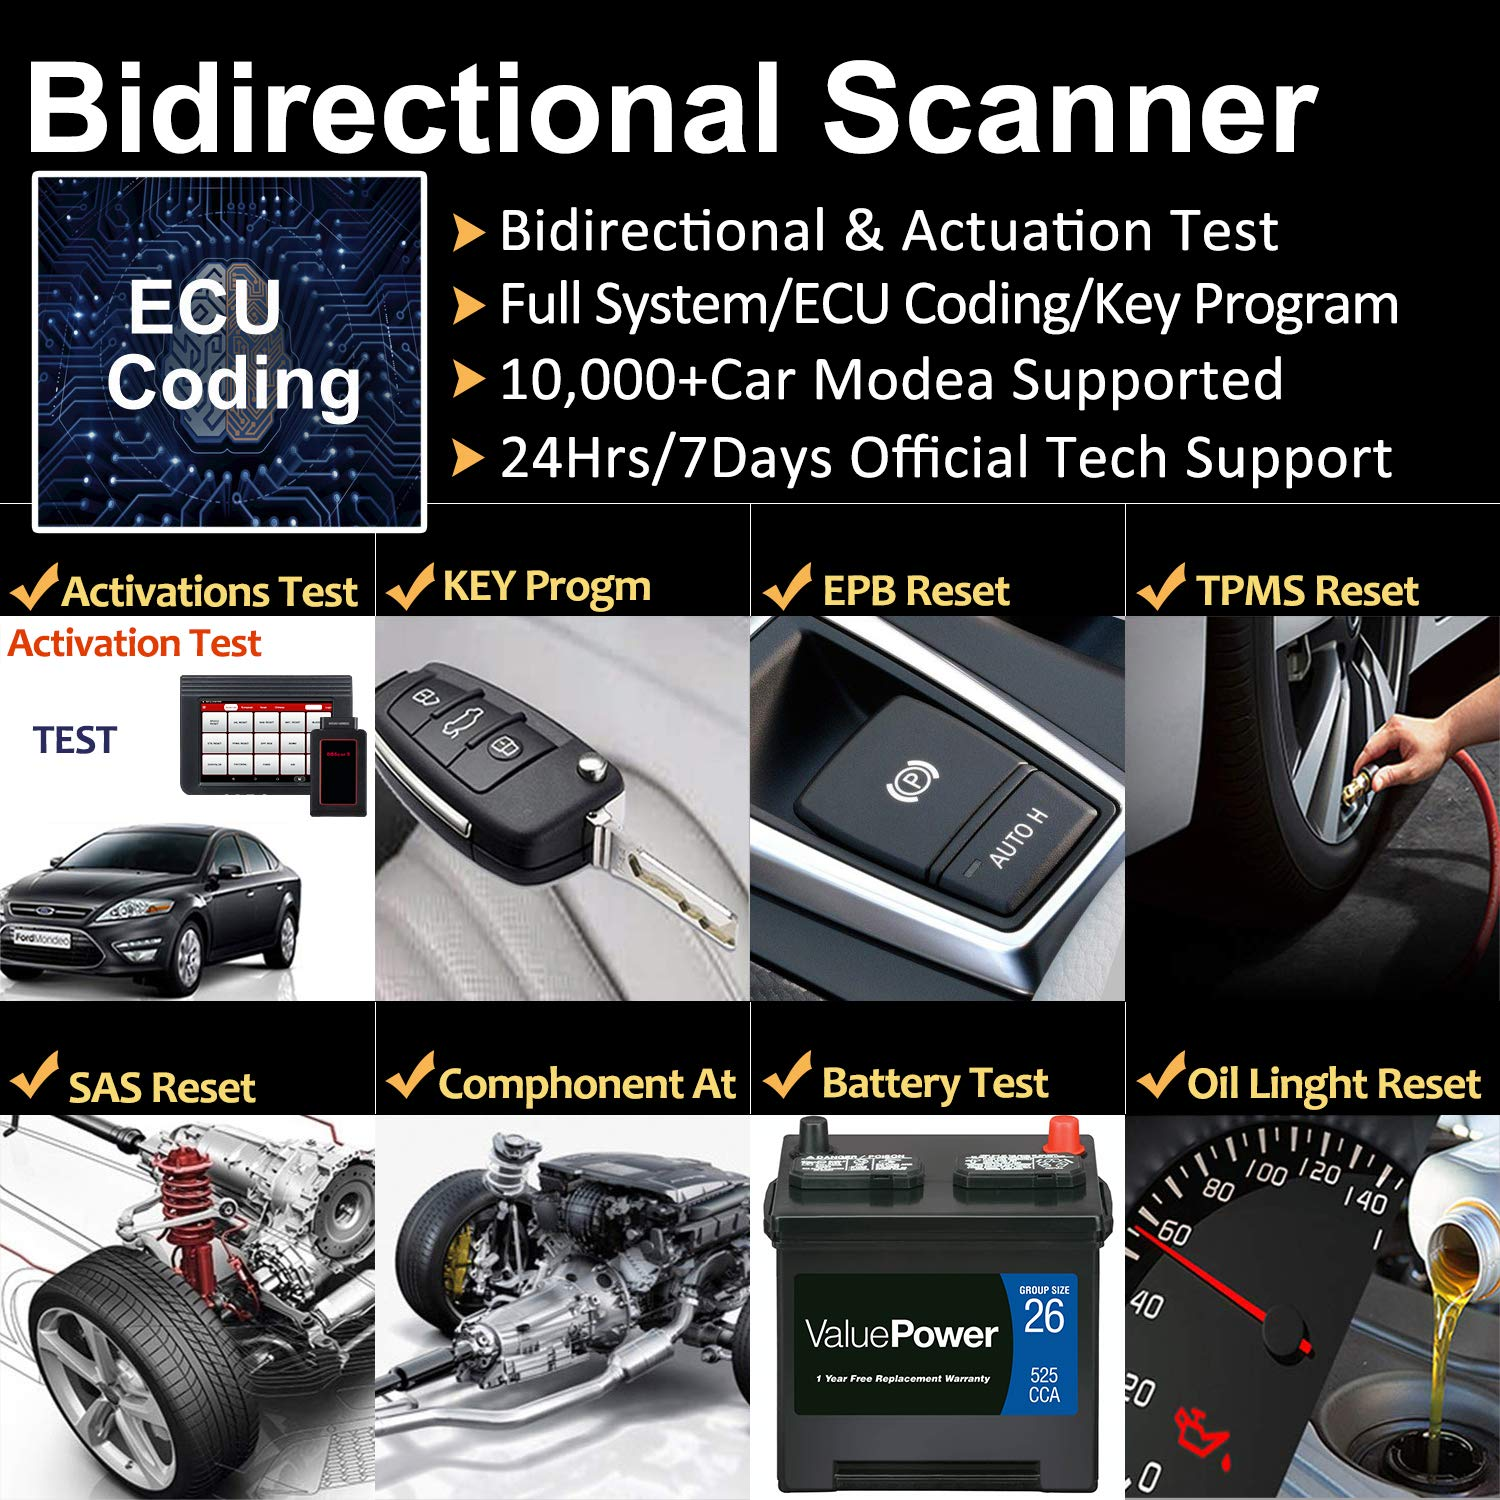 LAUNCH X431 V (X431 Pro) Bi-Directional OBD2 Diagnostic Scanner,ECU Coding Key Fob Programming, ABS Bleeding Brake, Reset Functions Oil Reset, TPMS,EPB, SAS, DPF, BMS, SRS - 2 Years Free Update & Case by LAUNCH (Image #2)